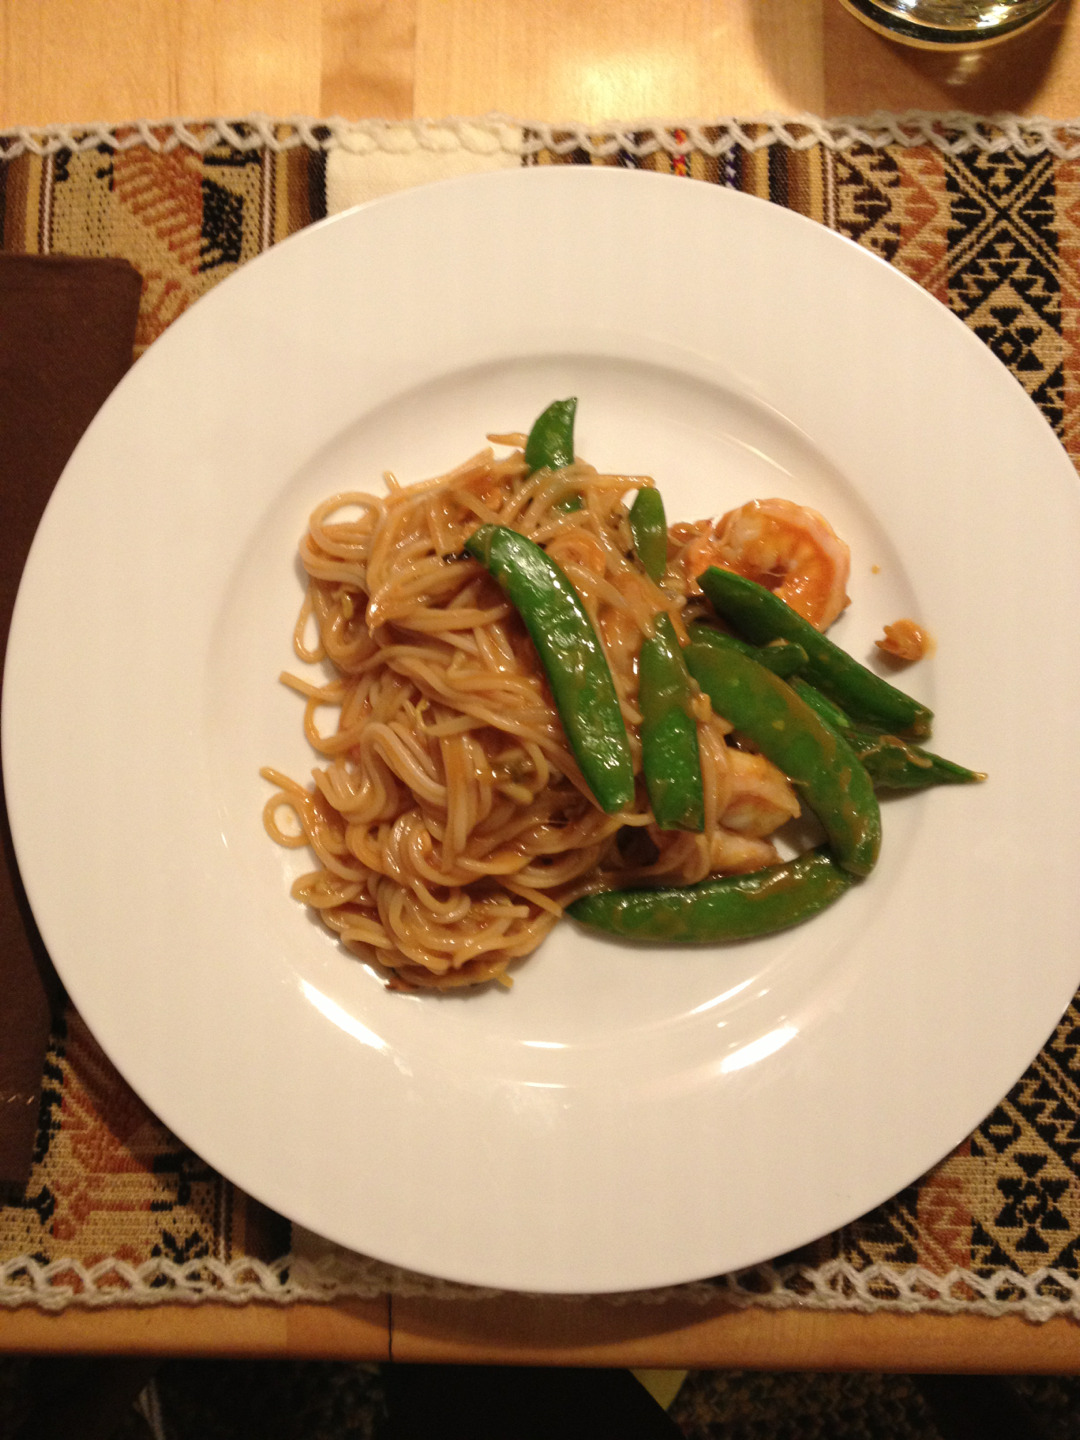 Shrimp pad thai in peanut sauce😍